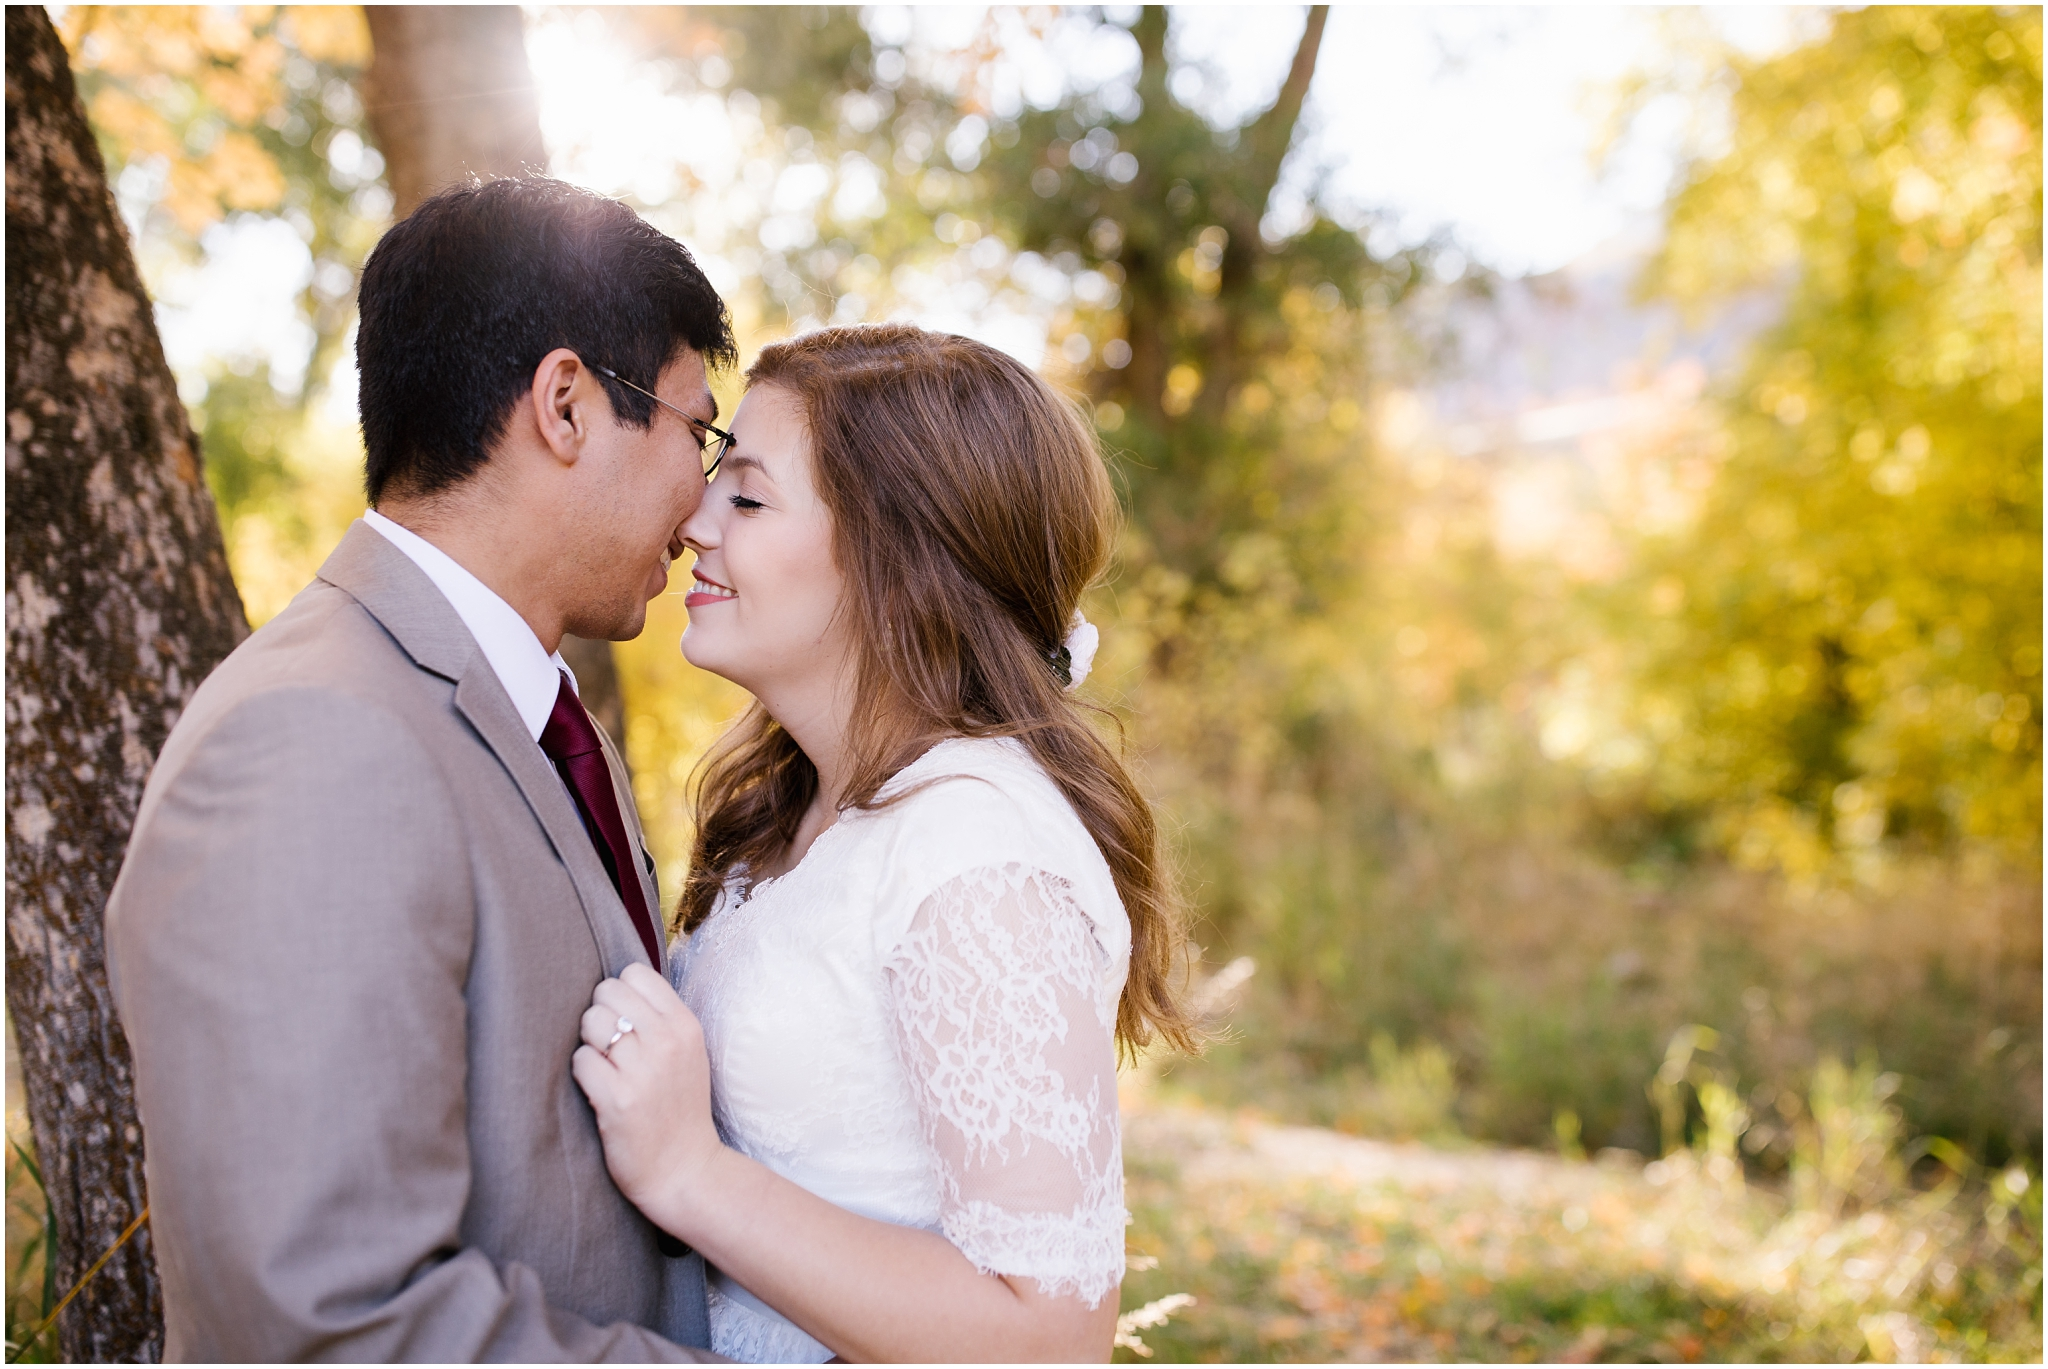 HE-BRIDALS-6_Lizzie-B-Imagery-Utah-Wedding-Photographer-Central-Utah-Park-City-Salt-Lake-City-Hobble-Creek-Canyon-Springville.jpg